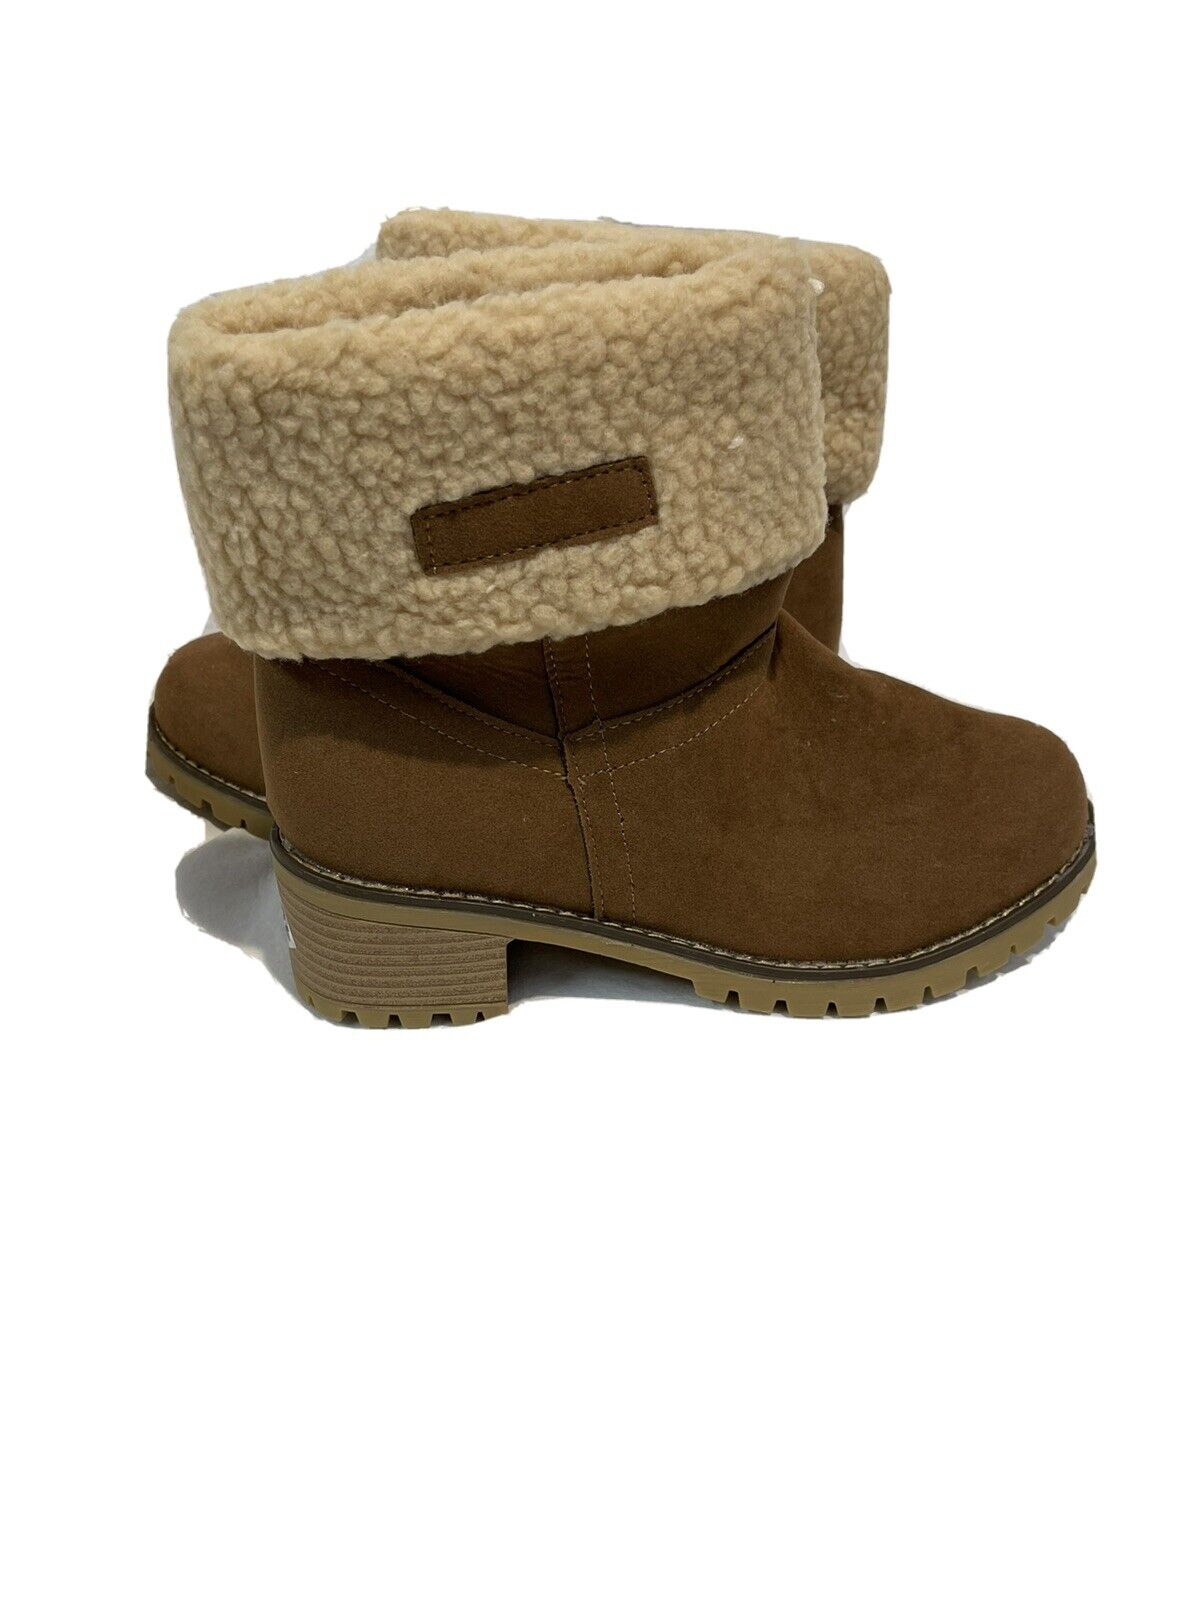 Tiosebon Womens Size 9 Boots With Fur Cuff Brand New With Box Tan Faux Suede